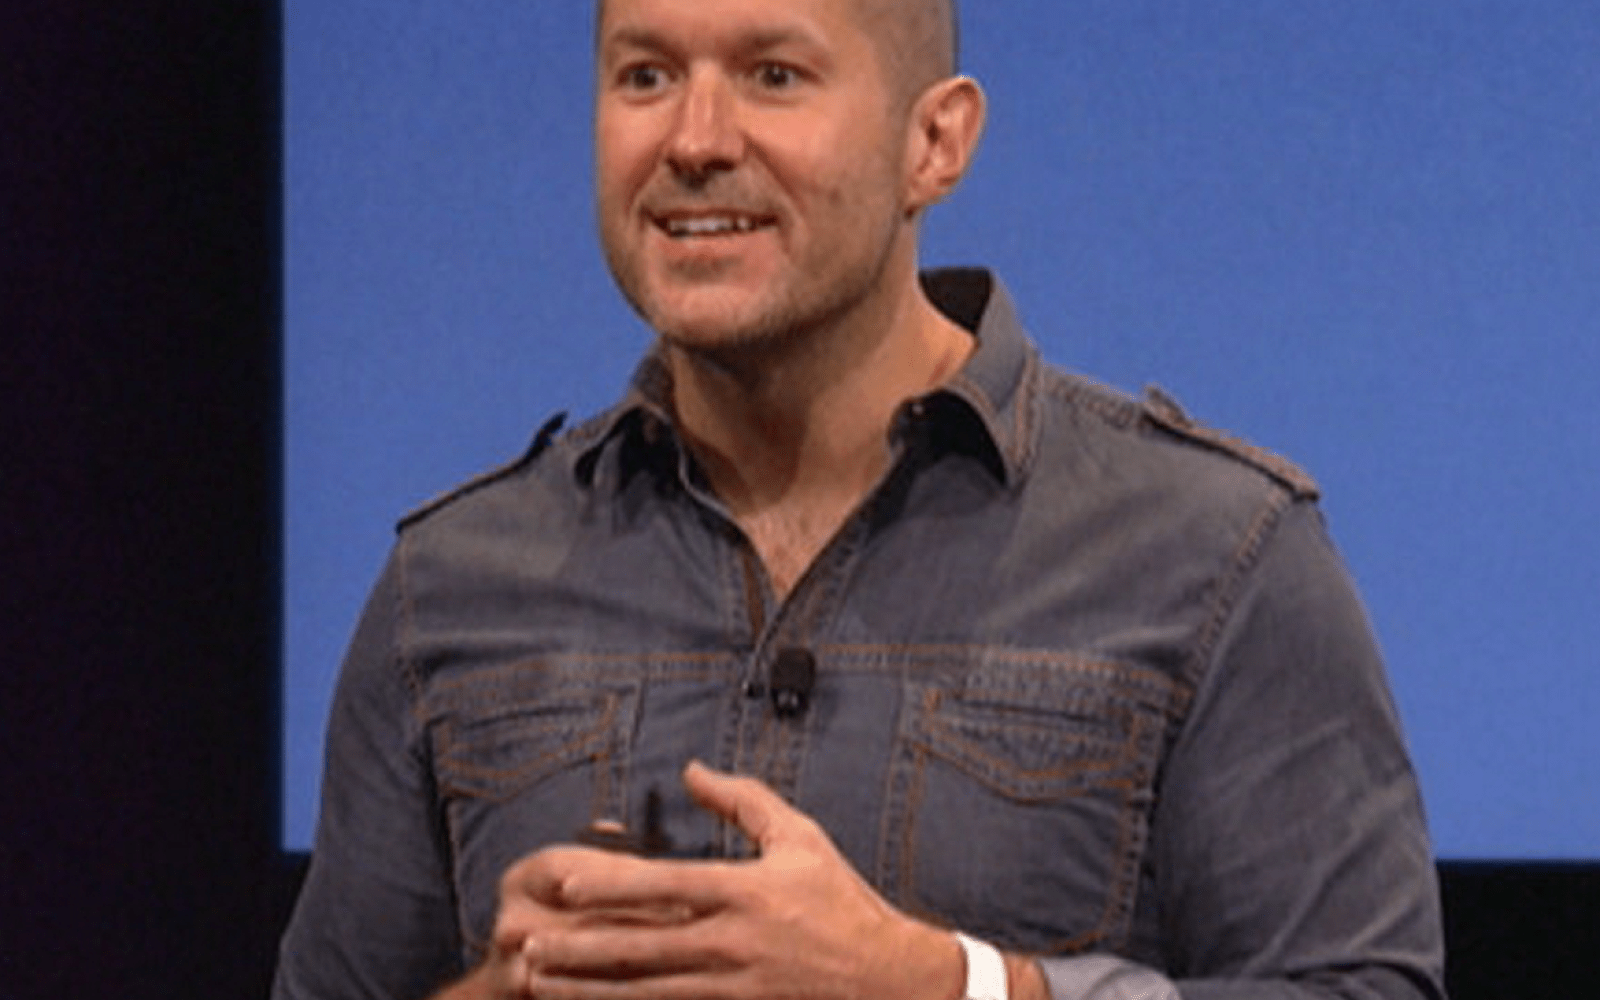 Bloomberg: Jony Ive's new software design role could lead to delays for iOS 7